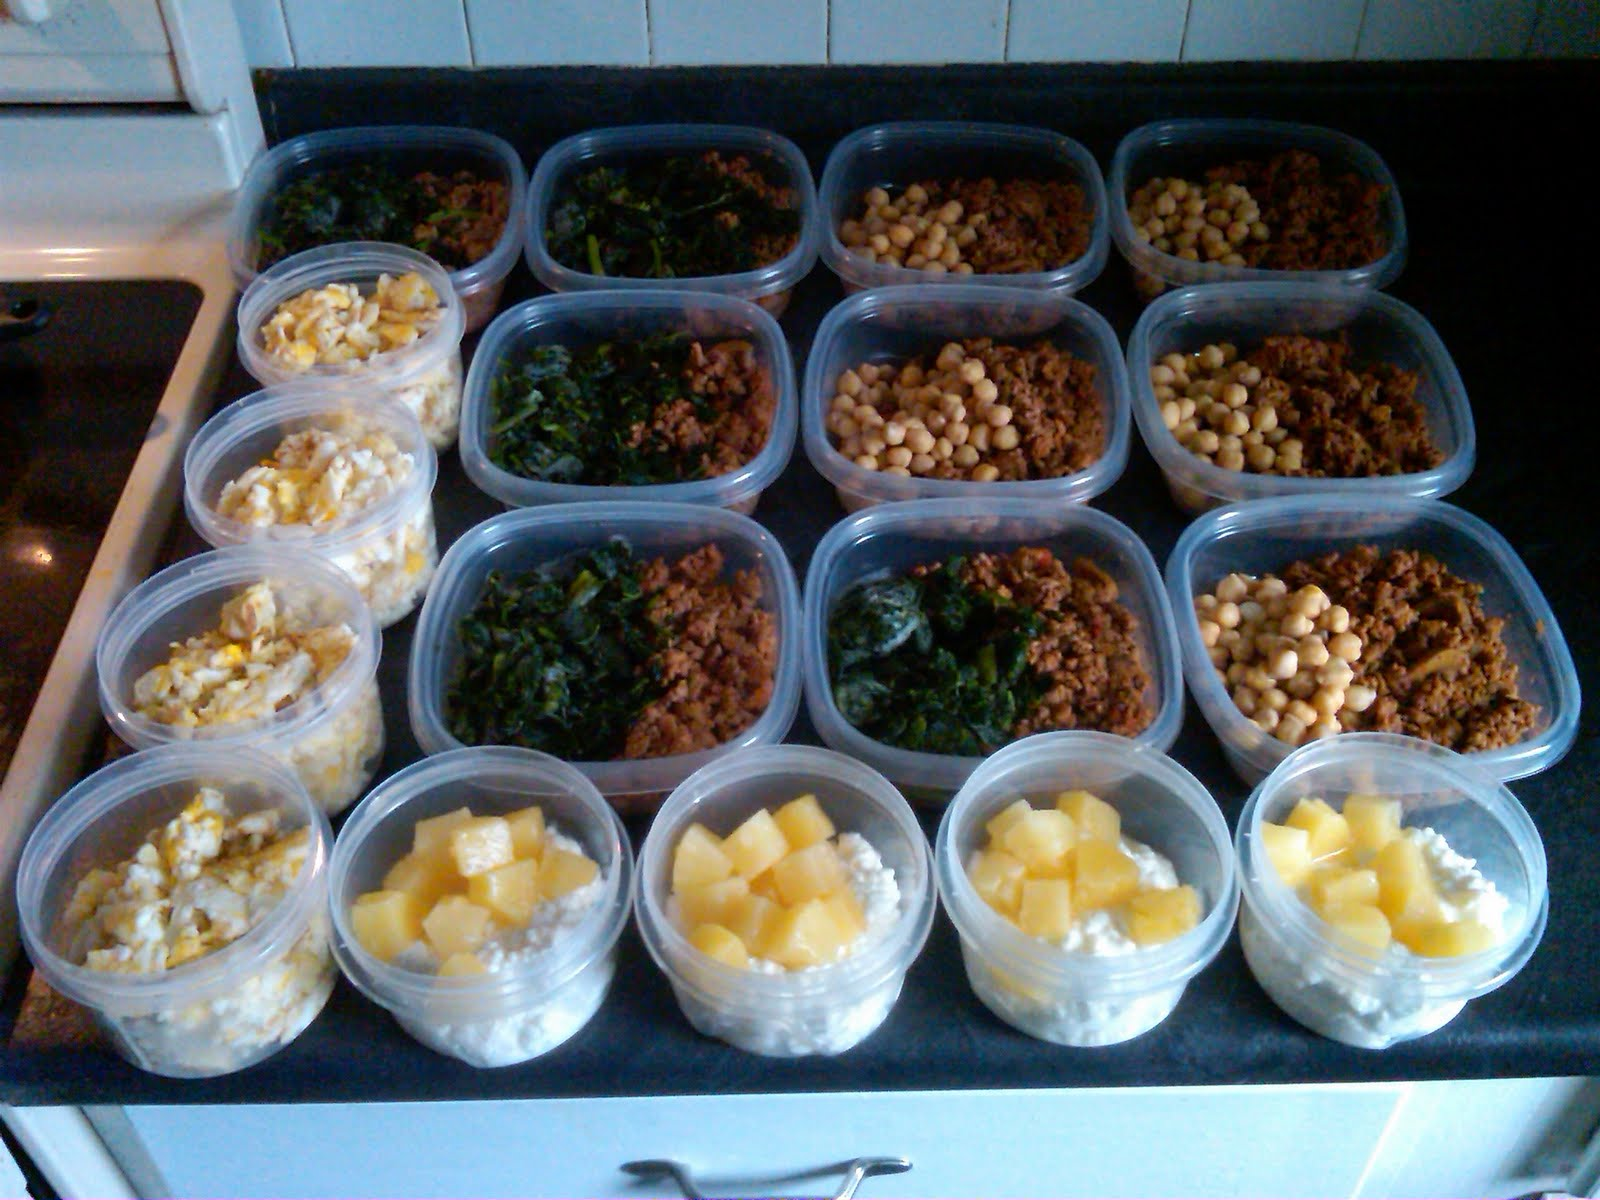 The Top 10 Meal Habits of Thin Families recommendations